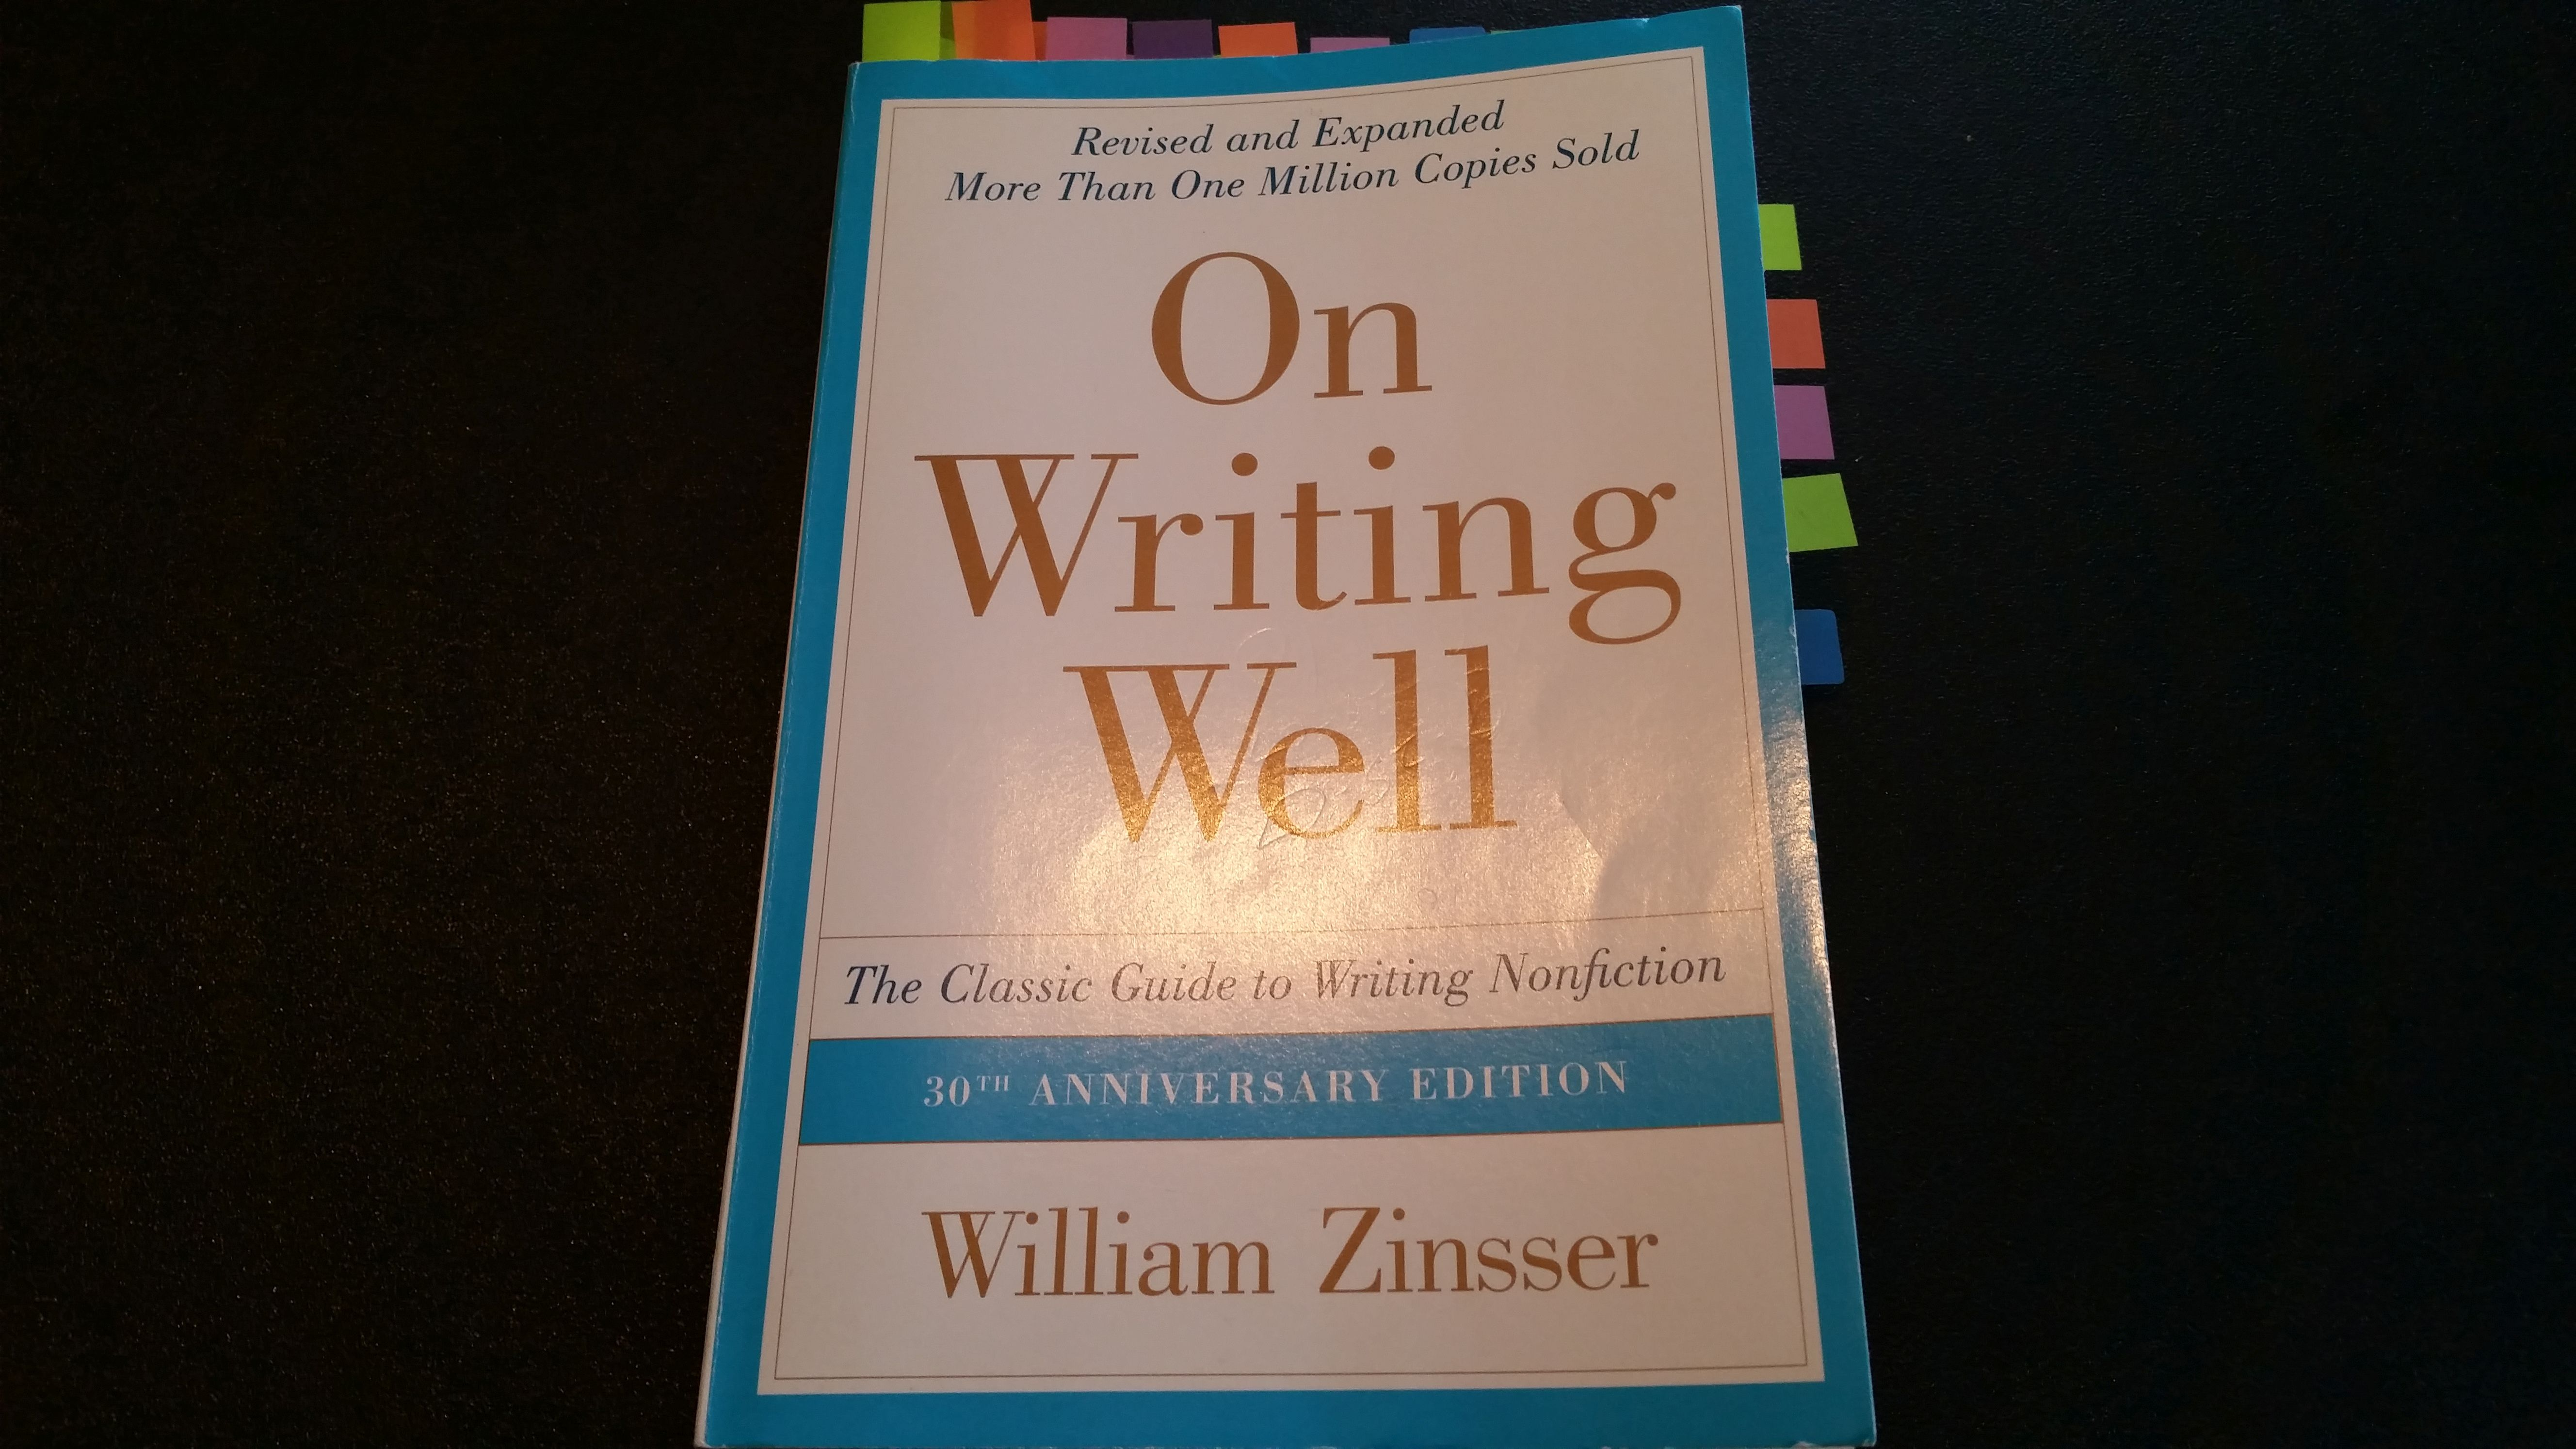 On Writing Well Chapter Summaries (Sponsored)